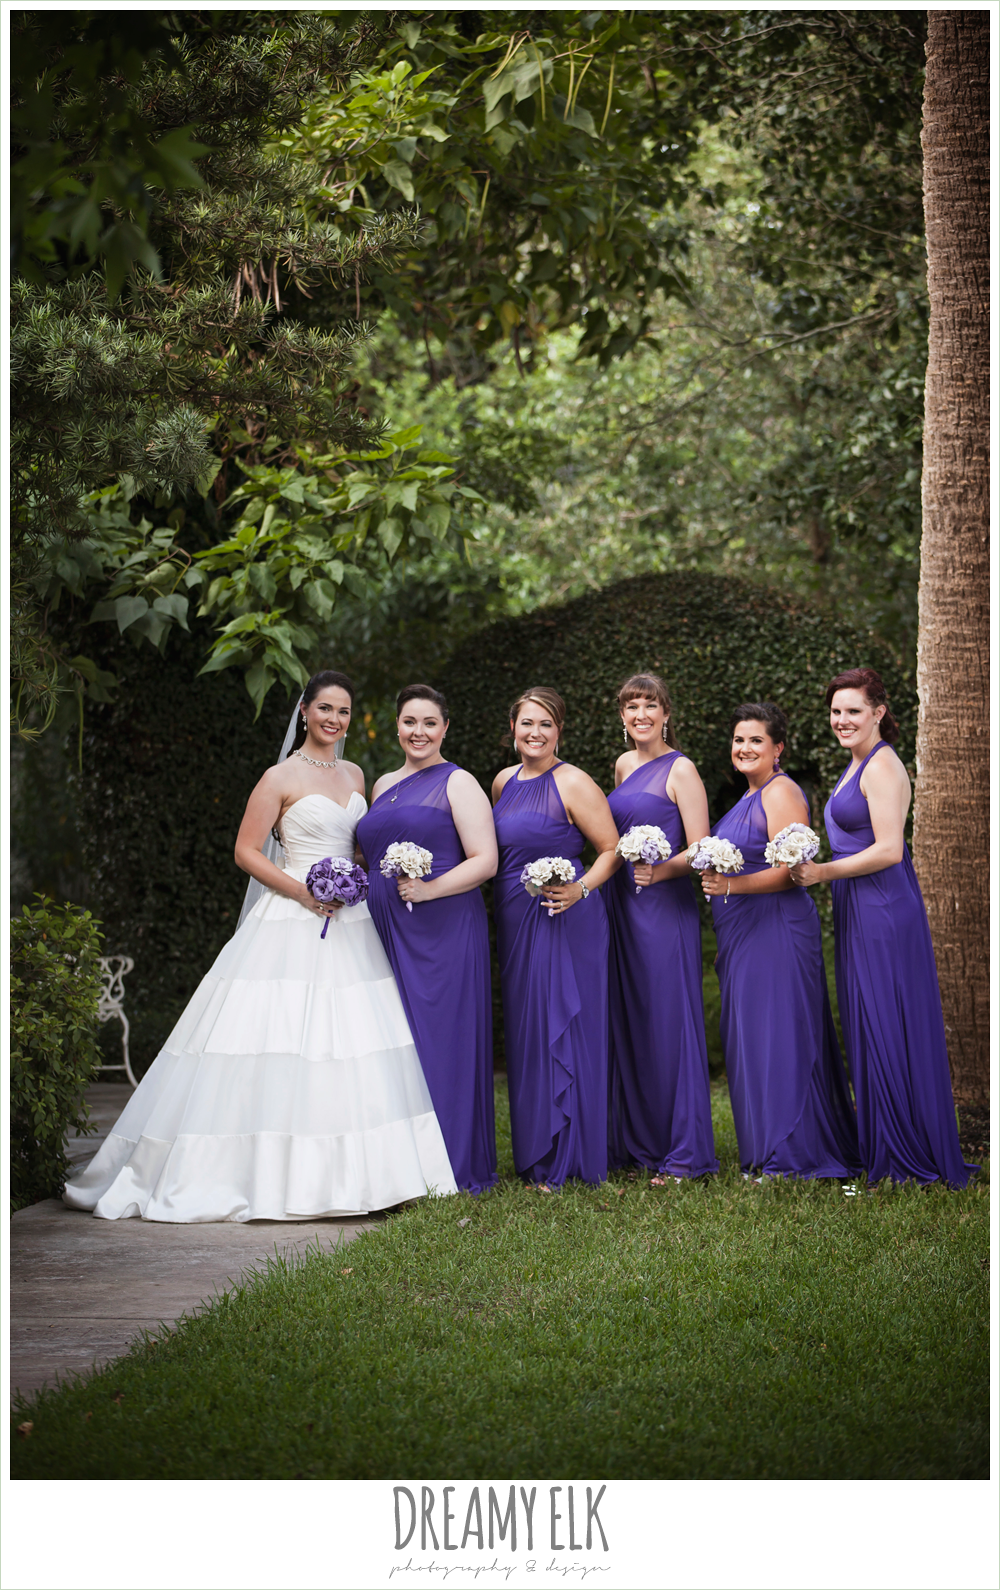 bridal party, long purple bridesmaids dresses, satin ball gown wedding dress, heather's glen summer wedding photo, houston, texas {dreamy elk photography and design}